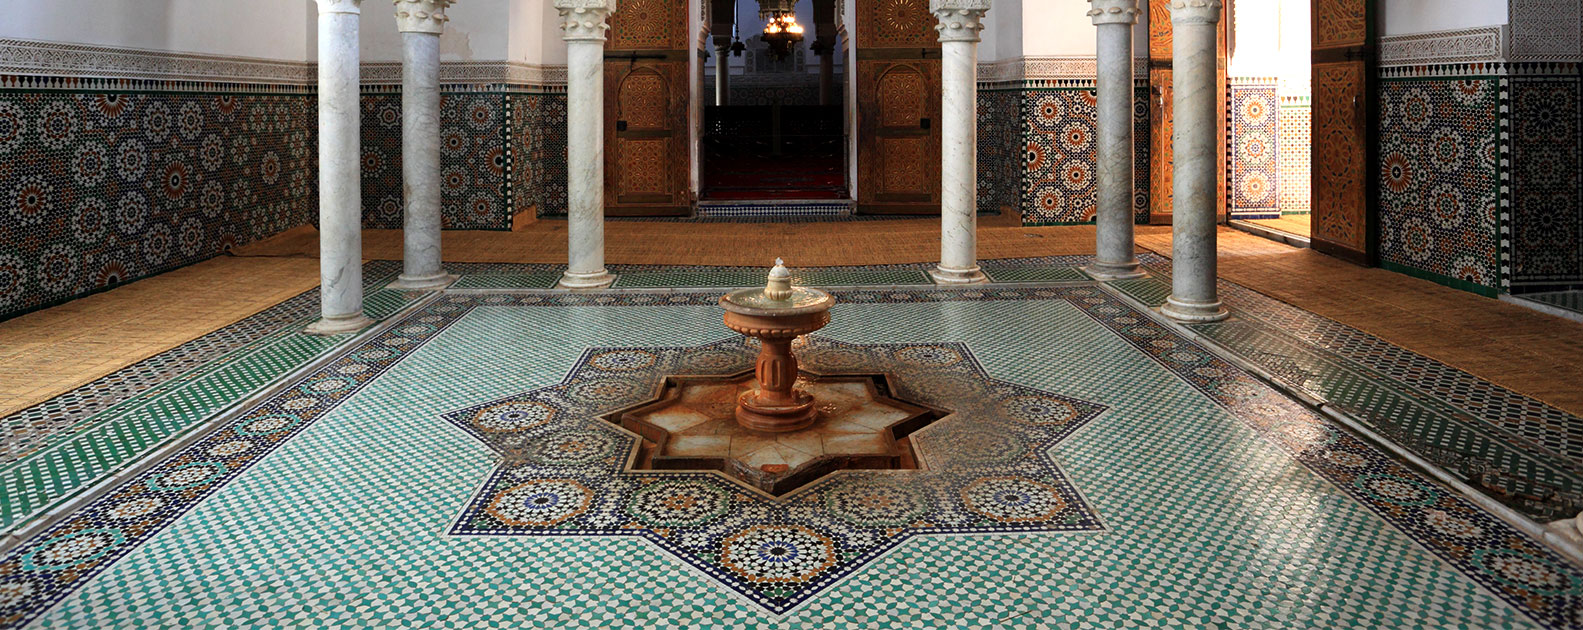 Mausoleum of Moulay Ismail in Meknes